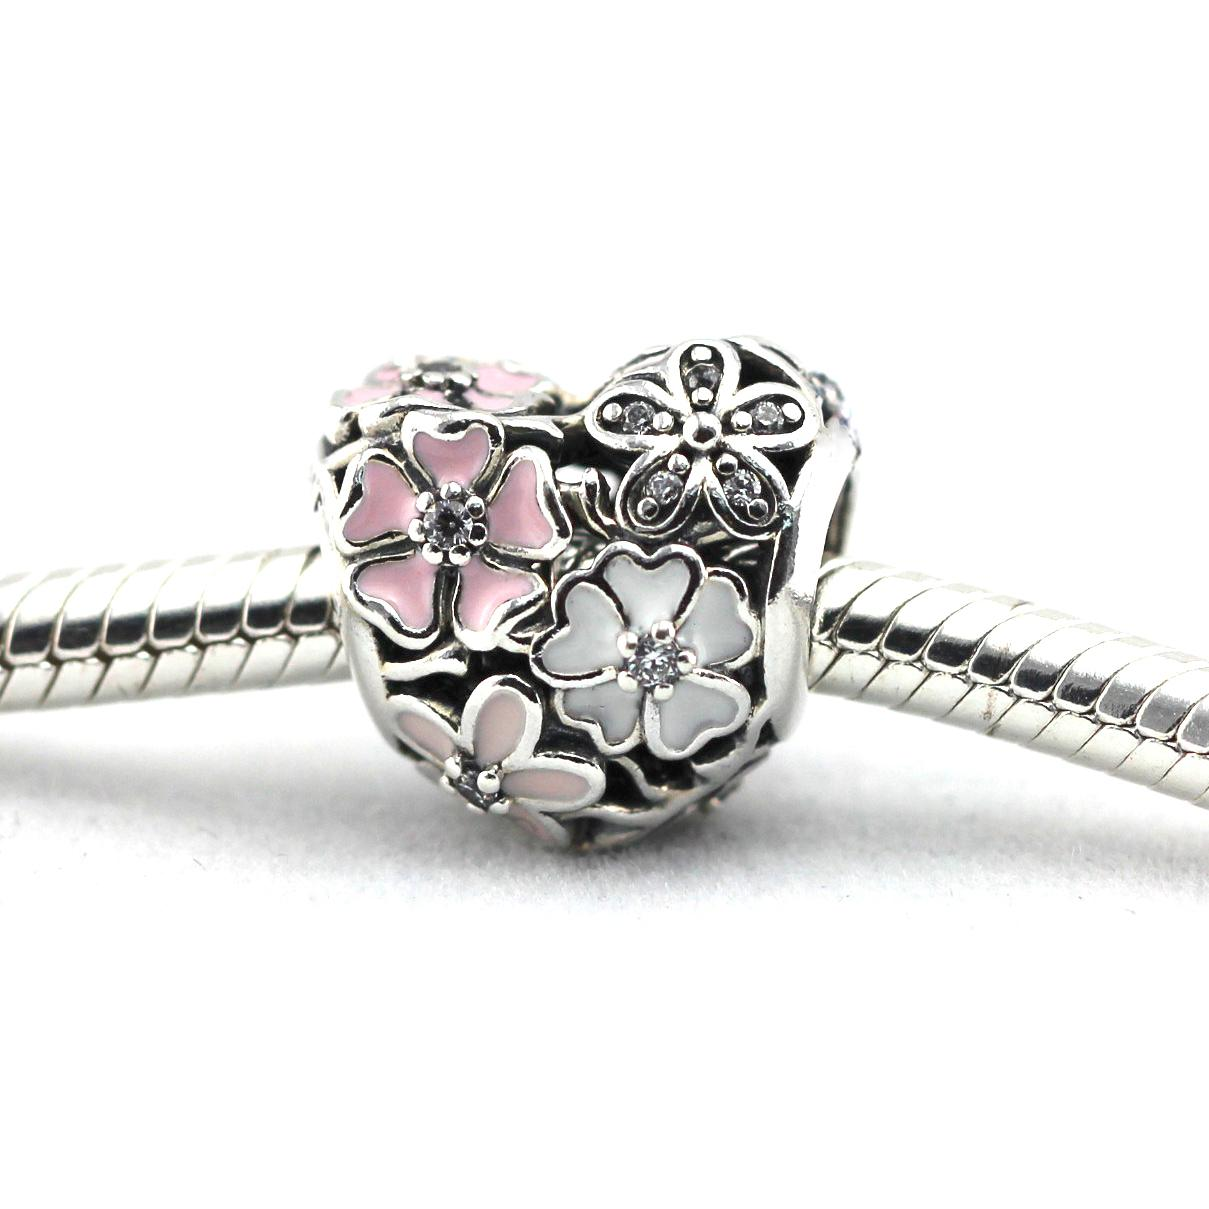 2016 primavera NEWEST original Authentic 925 sterling silver beads Flores Poetic Charme DIY se encaixa para pulseiras pandora atacado 1 pc / lote